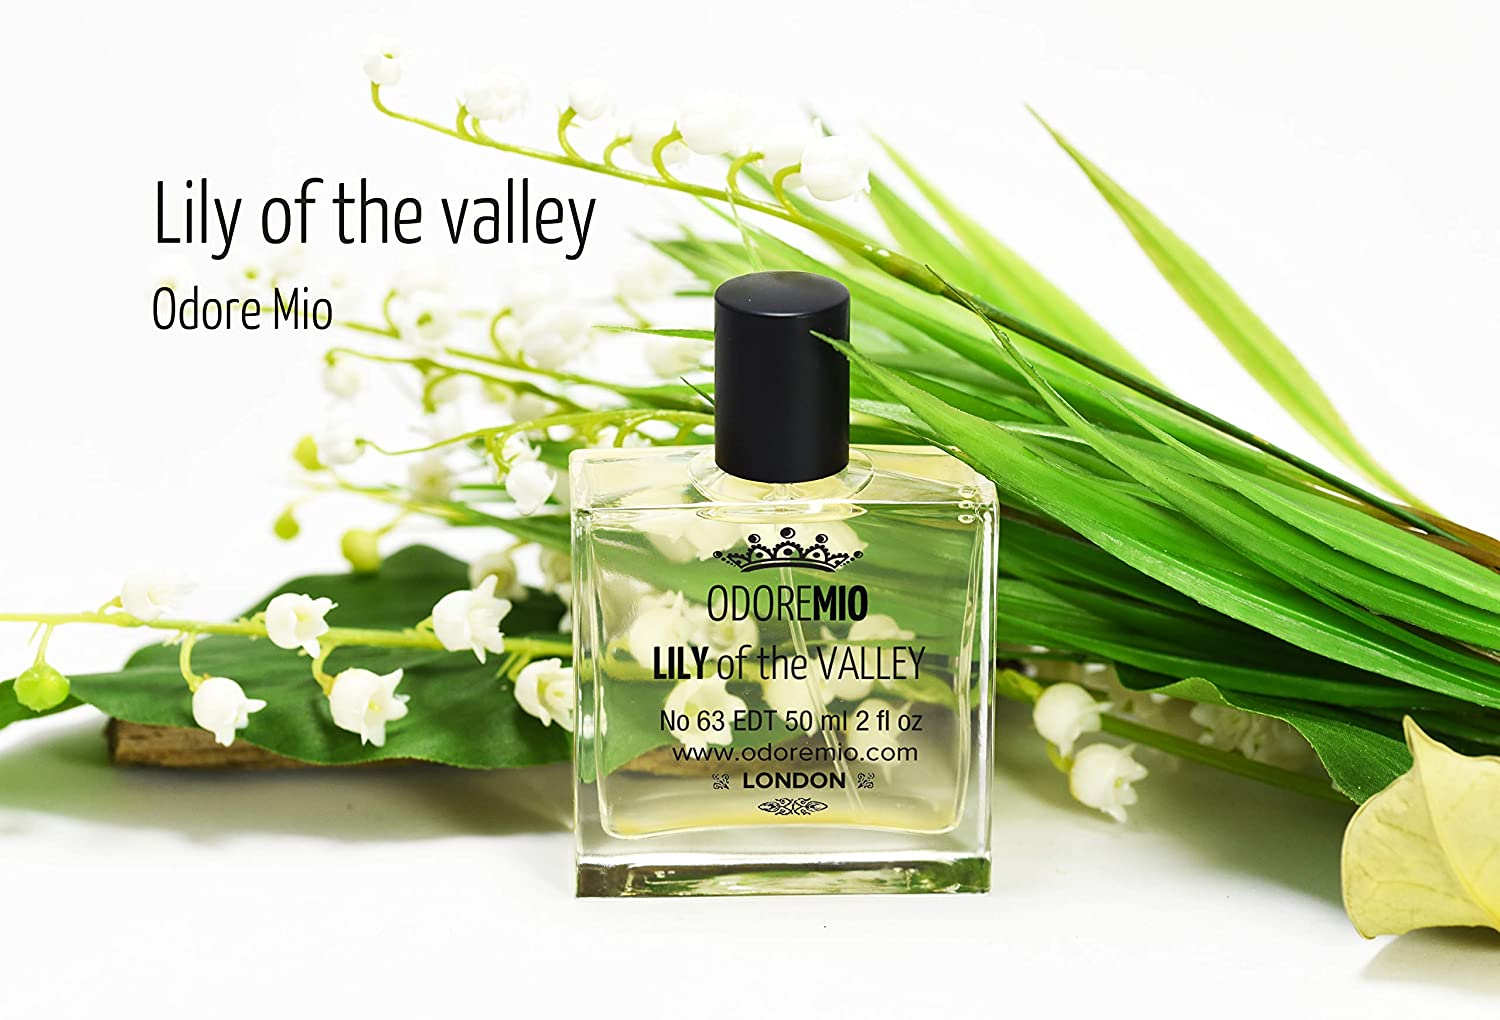 Odore Mio Lily of the Valley EDT 50 ml Perfume for Her